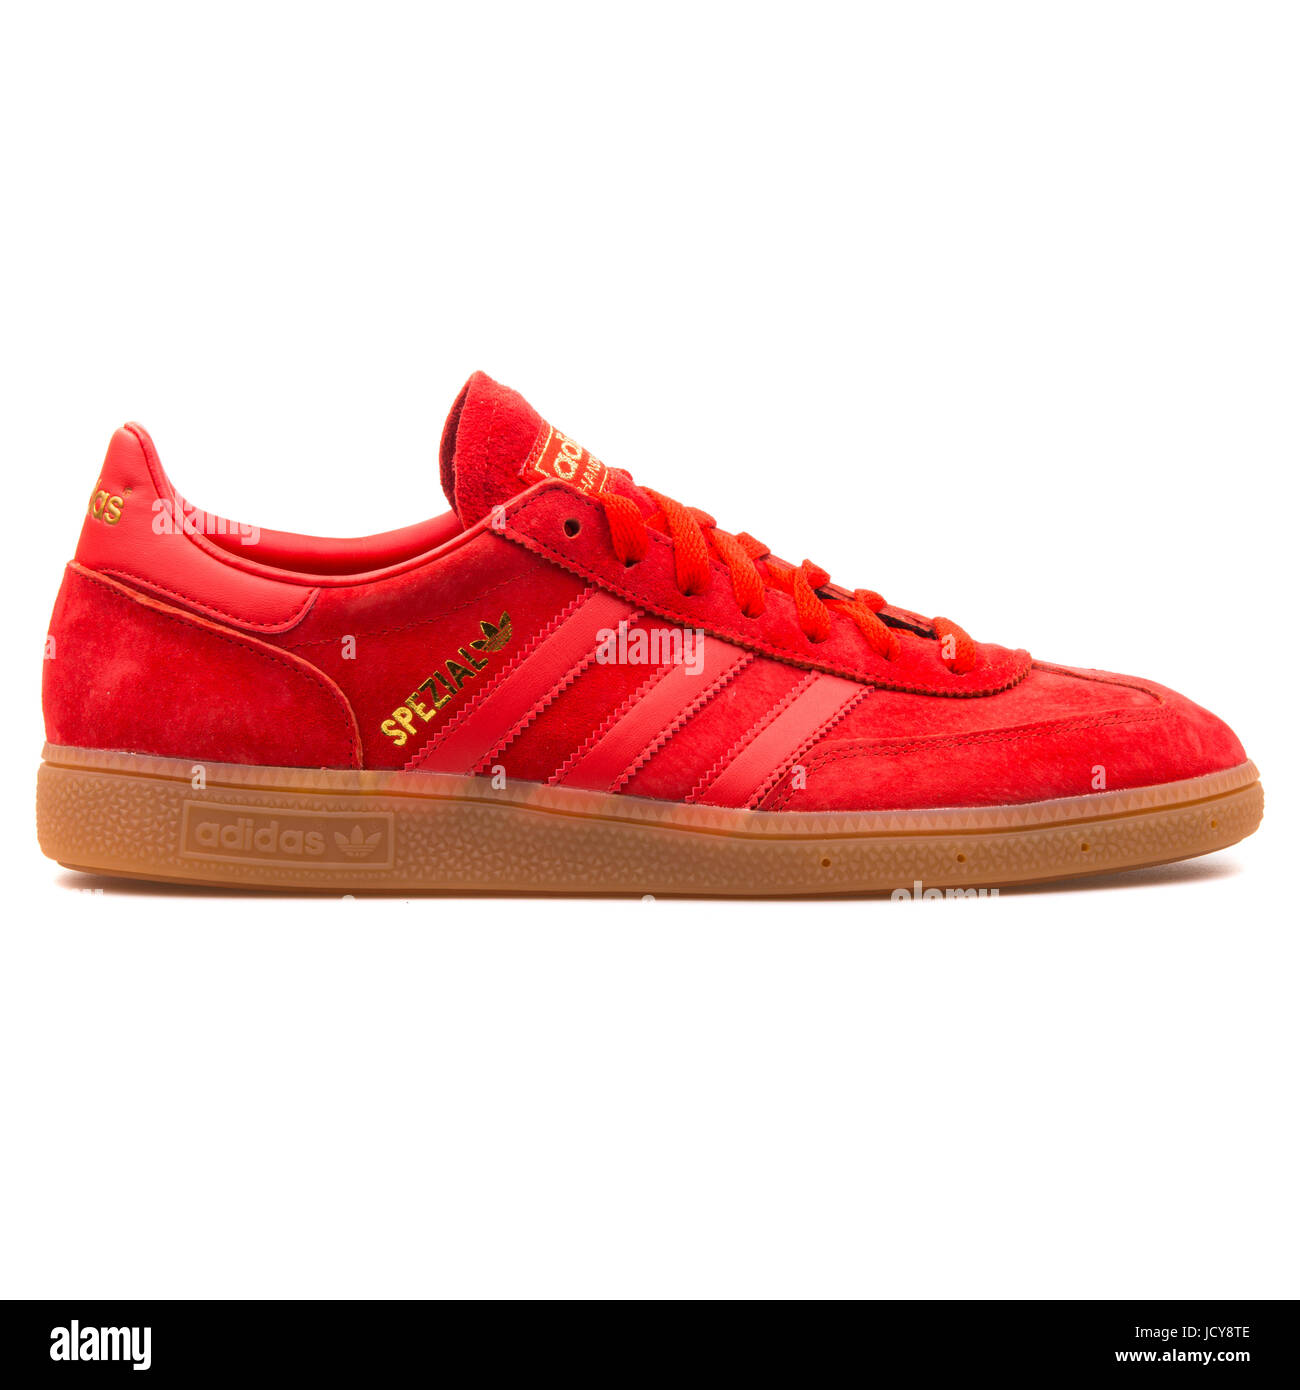 Adidas Spezial Red Men's Sports Shoes - B35209